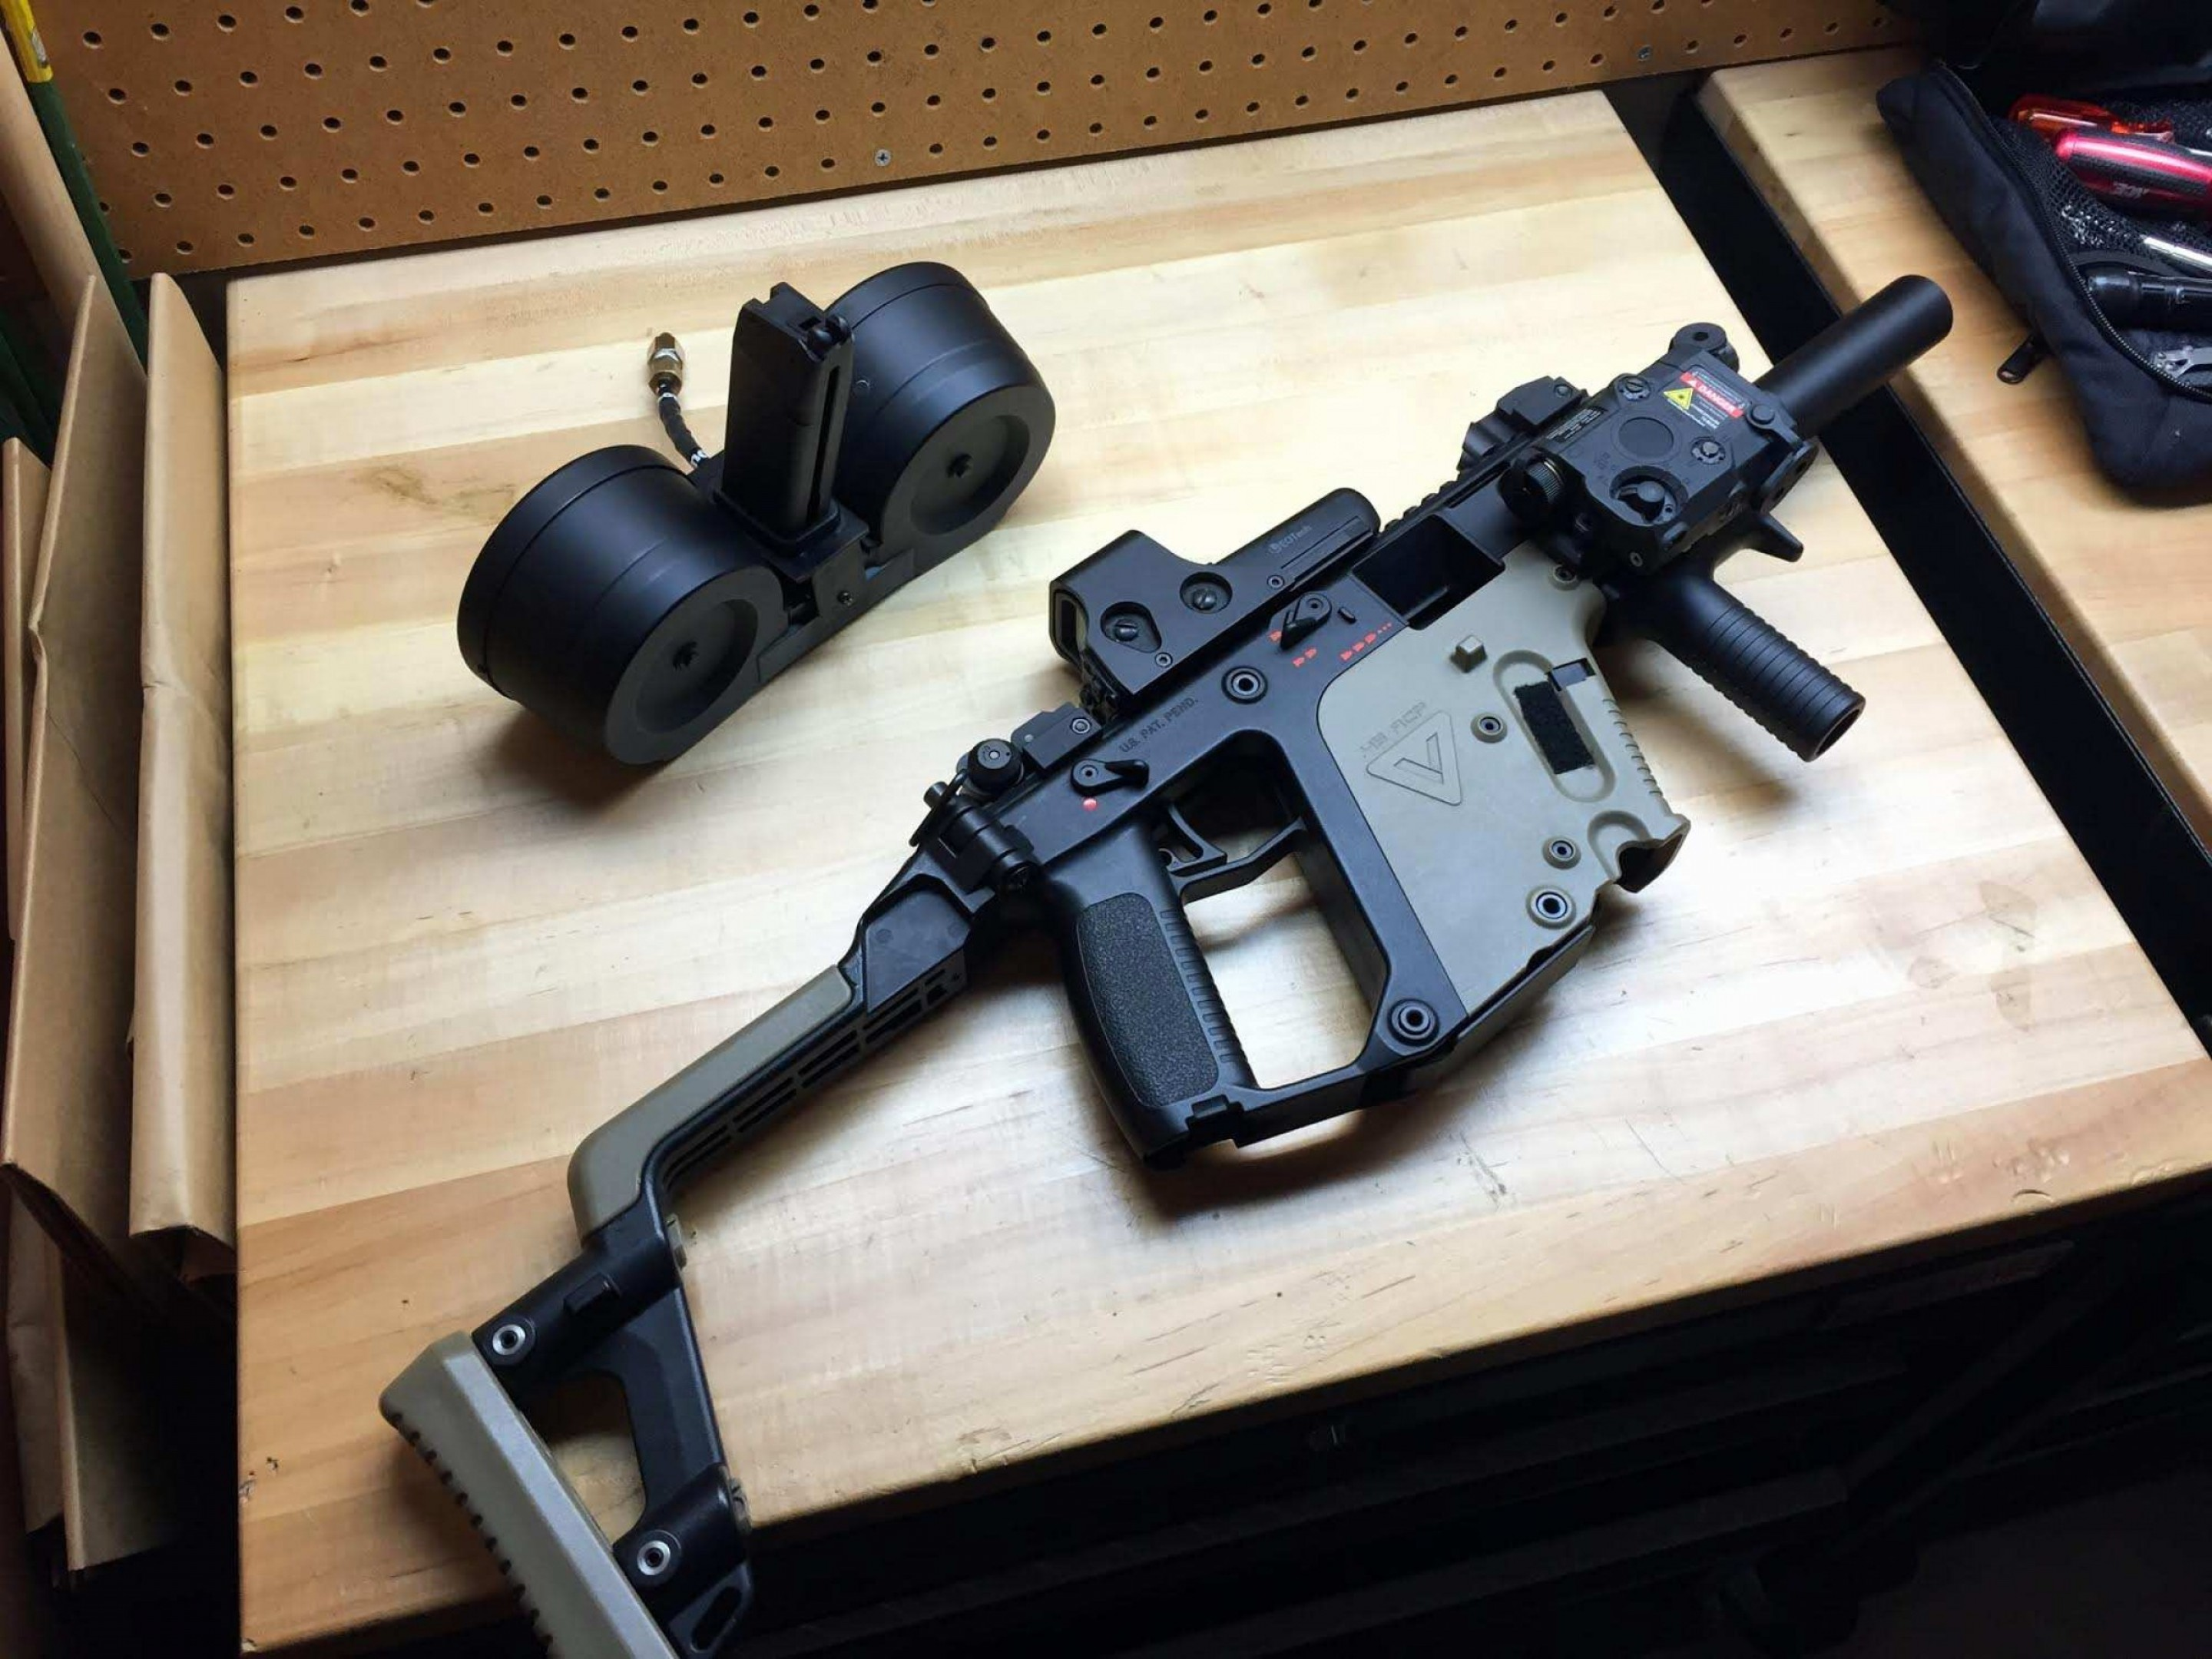 KWA KRISS Vector Parts: Kwa Kriss Vector New Kwa Kriss Vector Guns Amp Tactical Pinterest